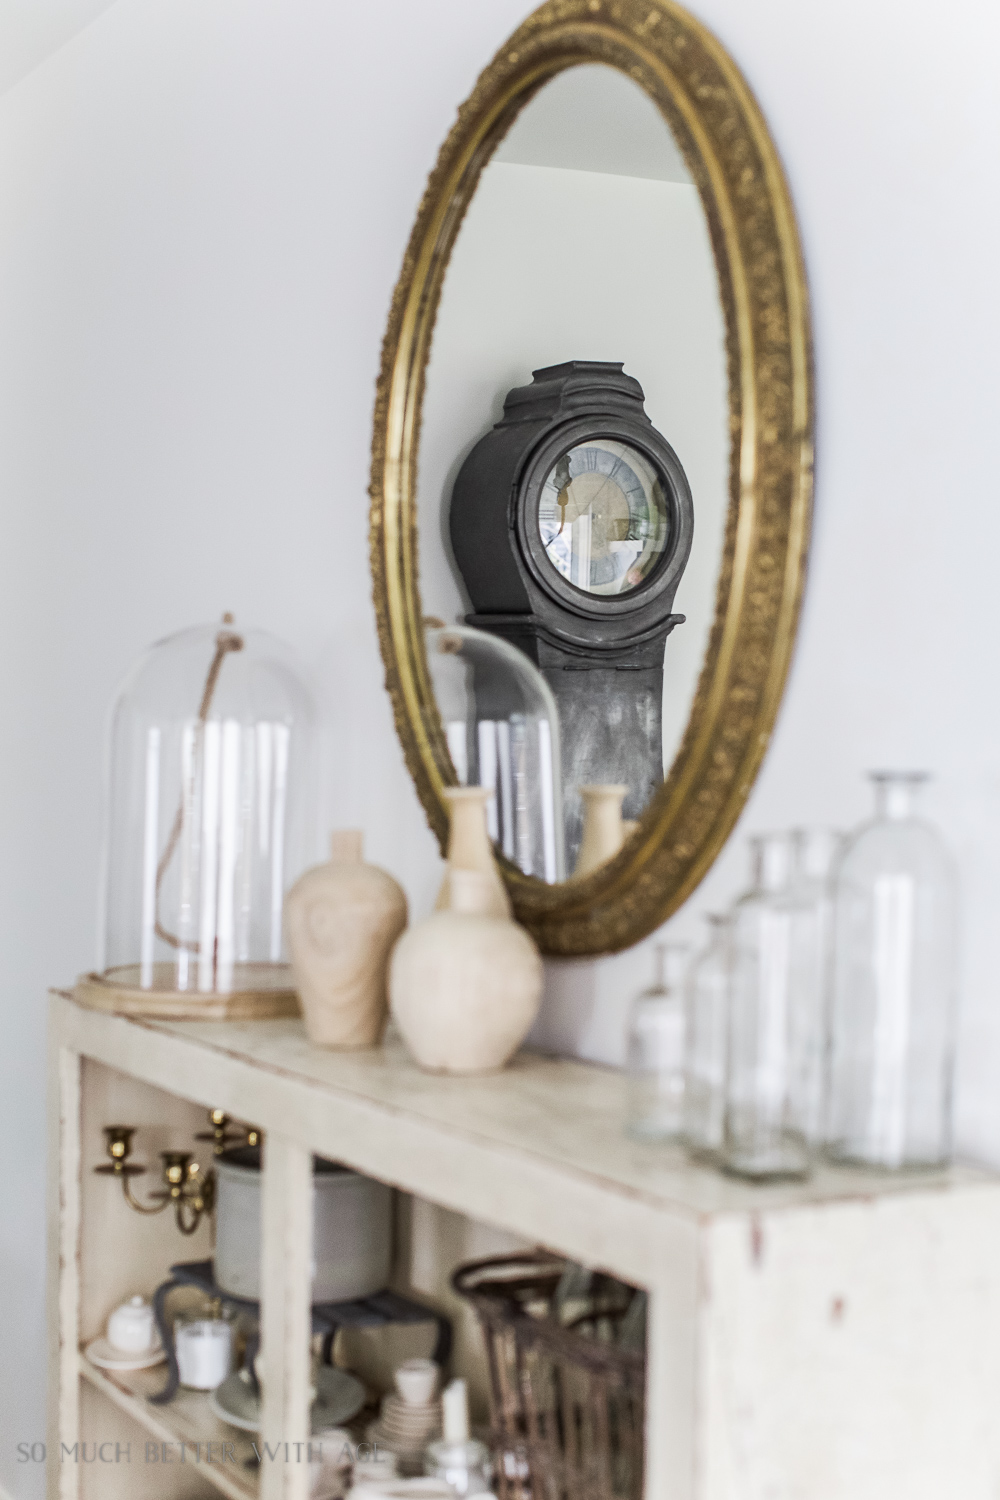 French Vintage Dining Room/Mora clock in gold mirror - So Much Better With Age